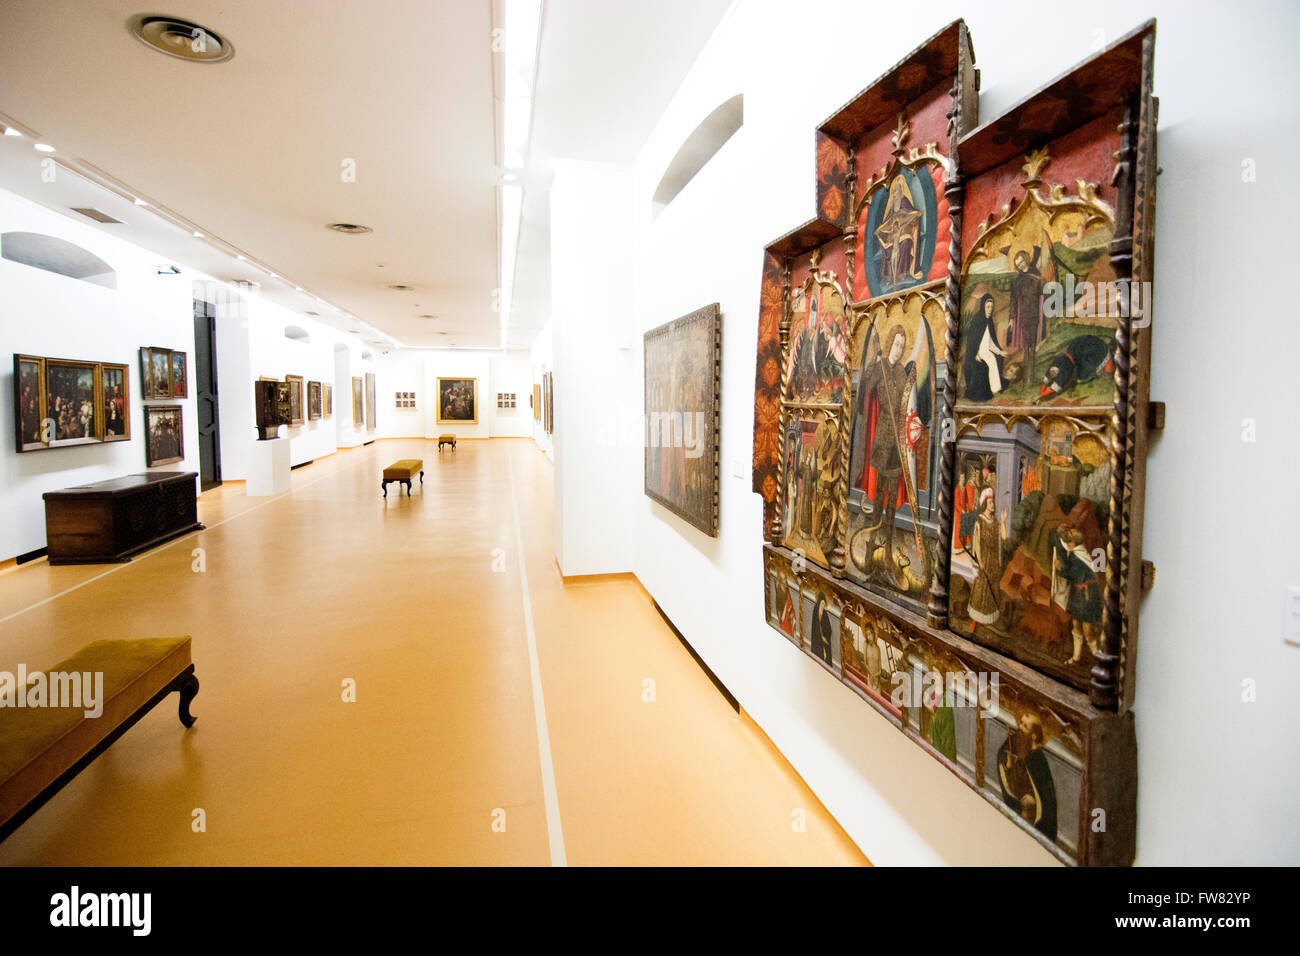 Oviedo, Spain. 31st March, 2016. A new room during the reopening of Museum of Fine Arts of Asturias on March 31, - Stock Image